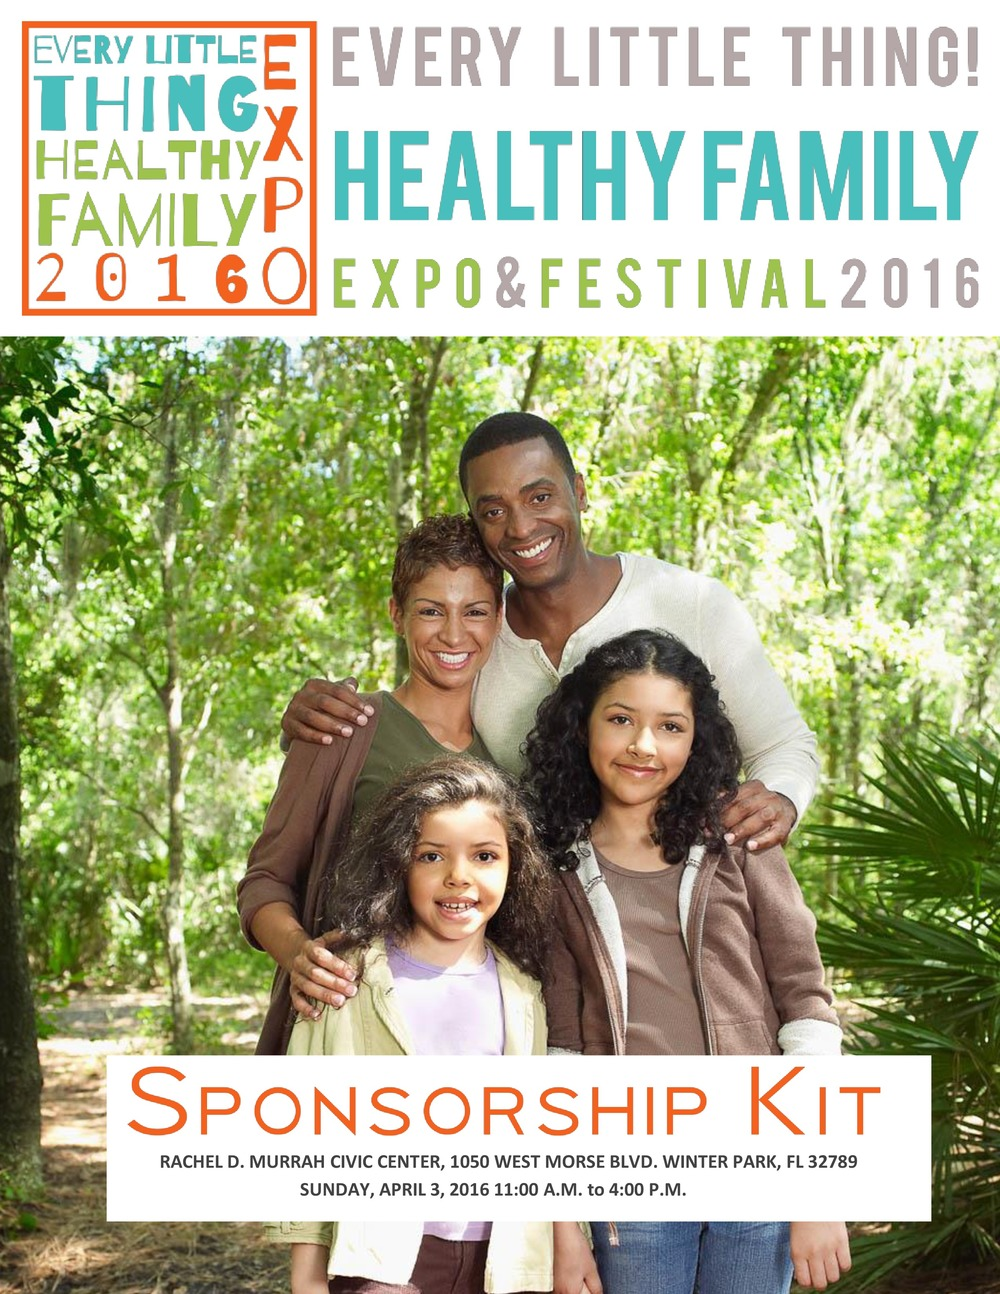 Draft COVER Sponsorship Kit Every Little Thing Healthy Family Expo 2016-page-0.jpg